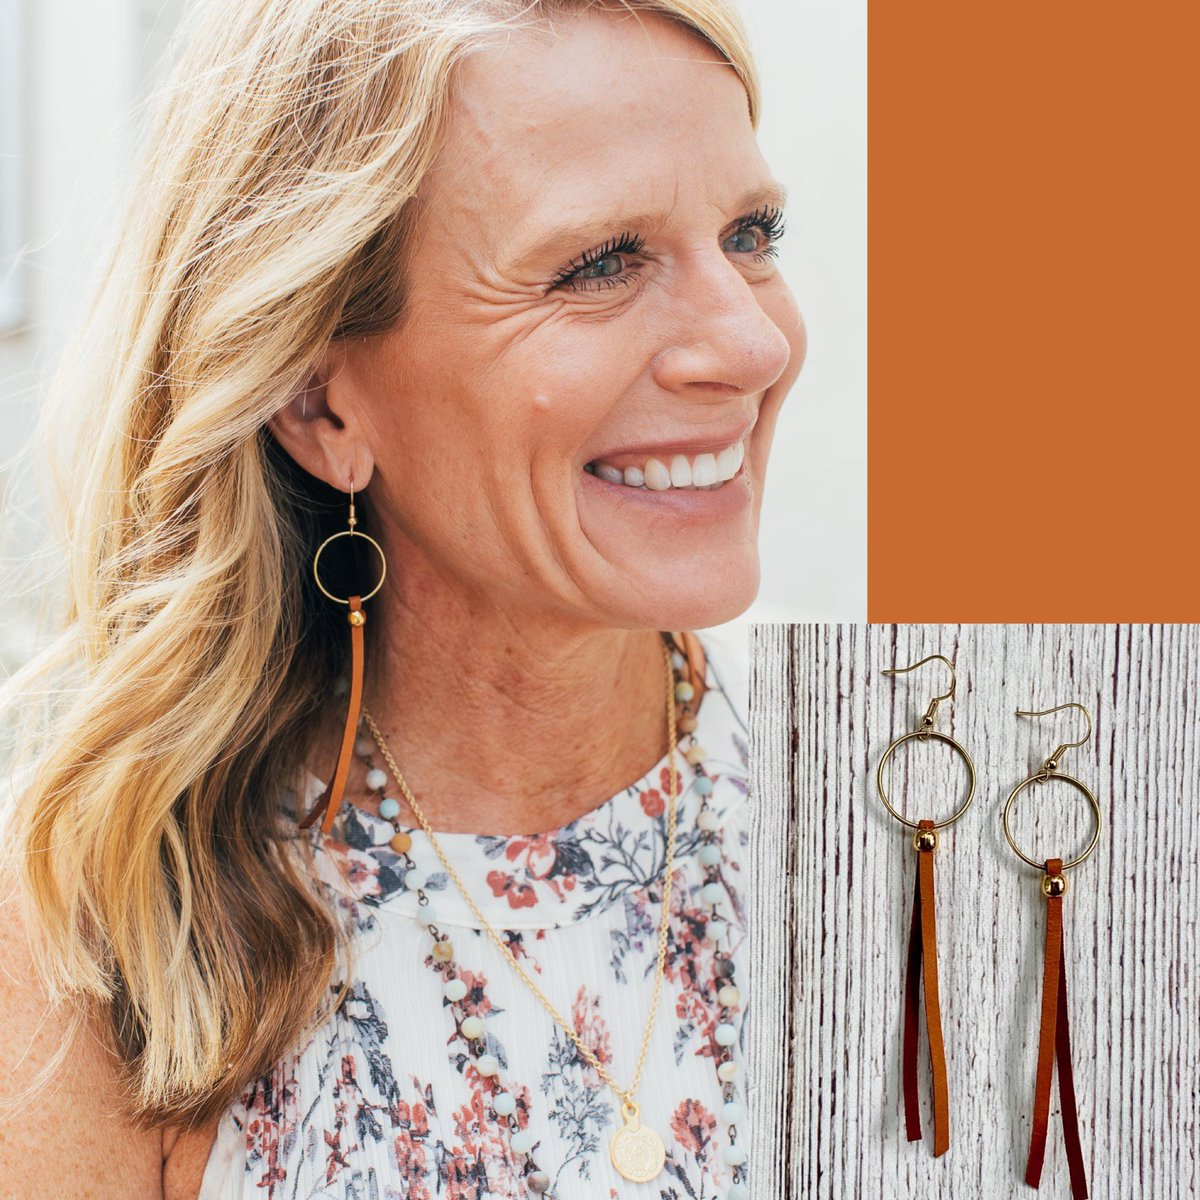 Add some length and free-spirited vibes to your style with these lightweight earrings! Order here http://bit.ly/2AsKmcH  w/free shipping. #earrings #jewelry #leather #tasselearrings #giftideas #outfitdetails #styleinspopic.twitter.com/iqCKrPRrvf